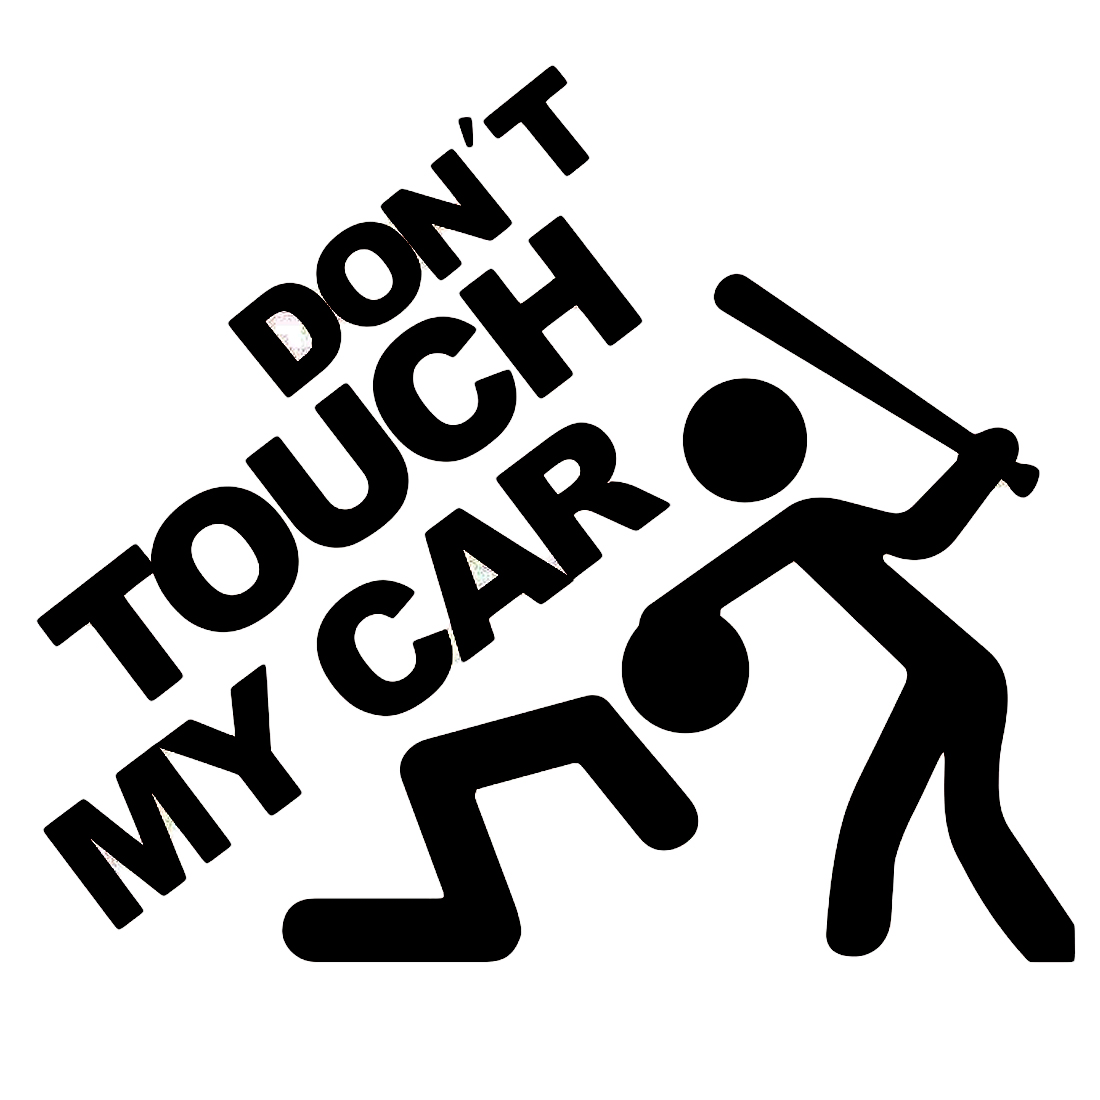 14*12cm Safety Warning Vinyl Car stickers DO NOT TOUCH MY CAR  car motorcycles decal styling accessories